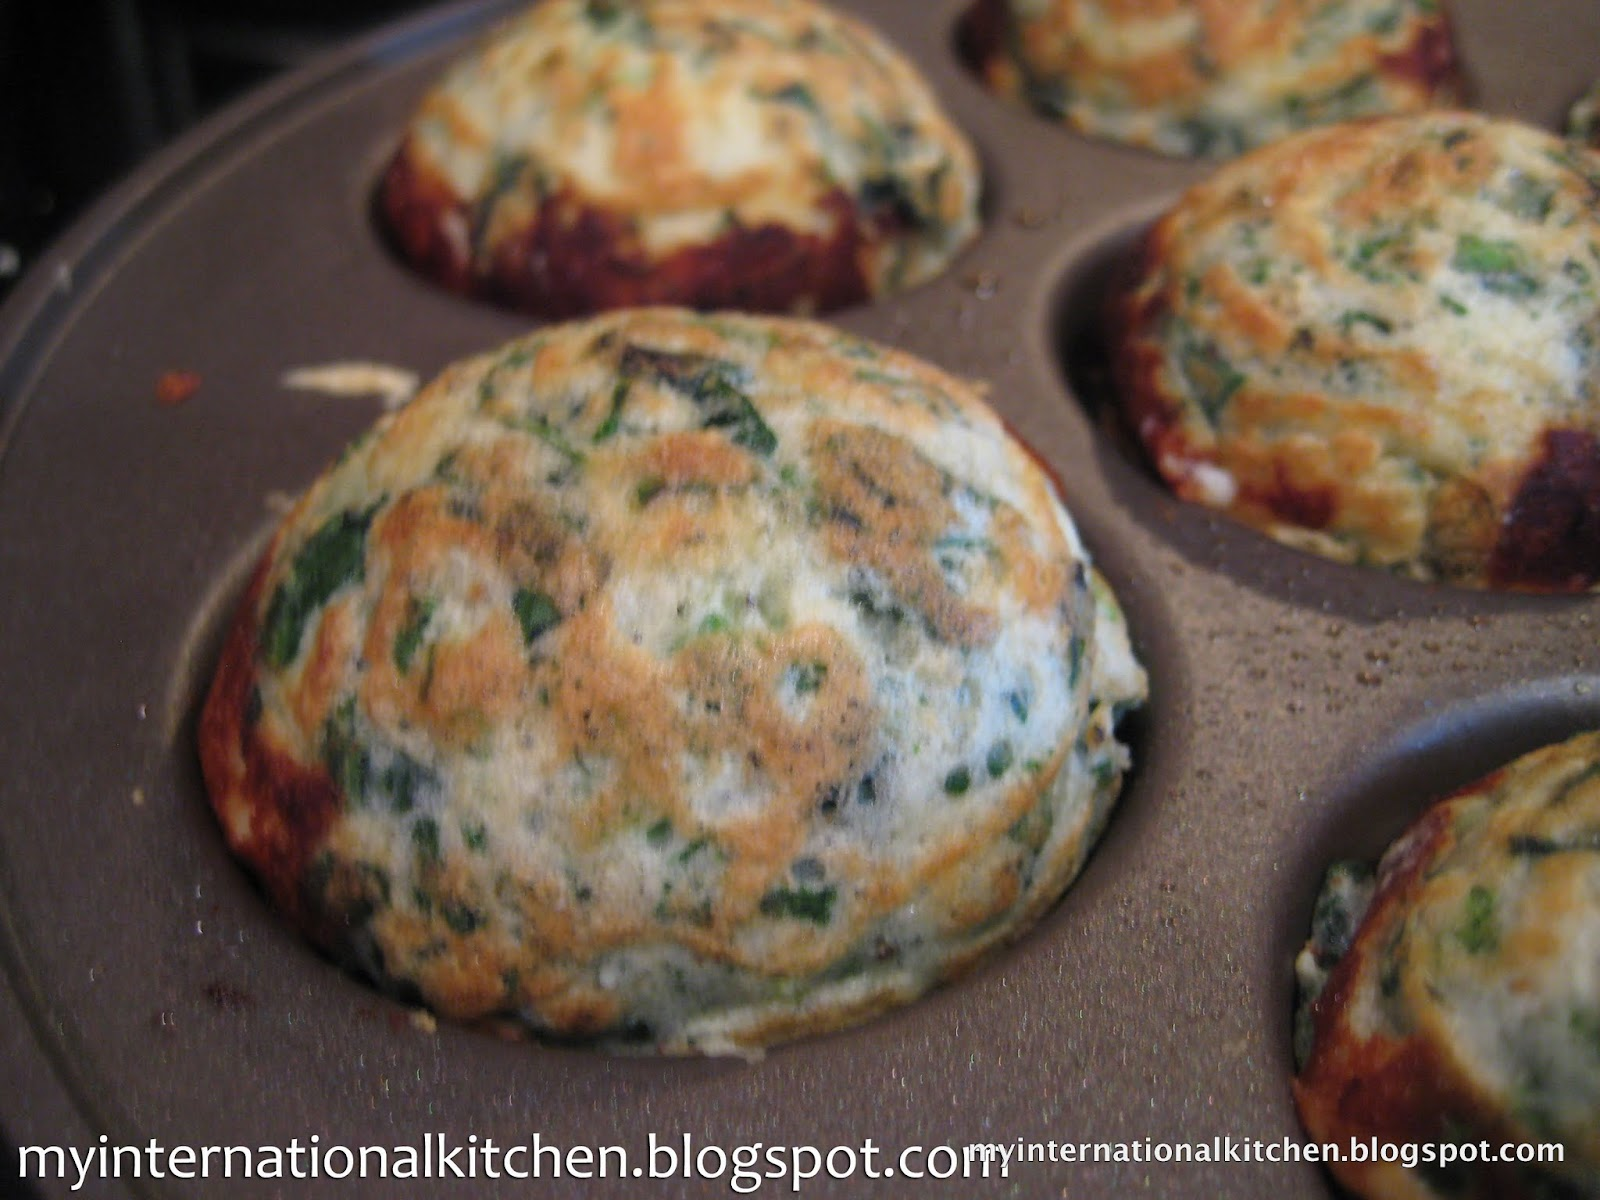 My International Kitchen: Spinach & Feta Ebelskivers